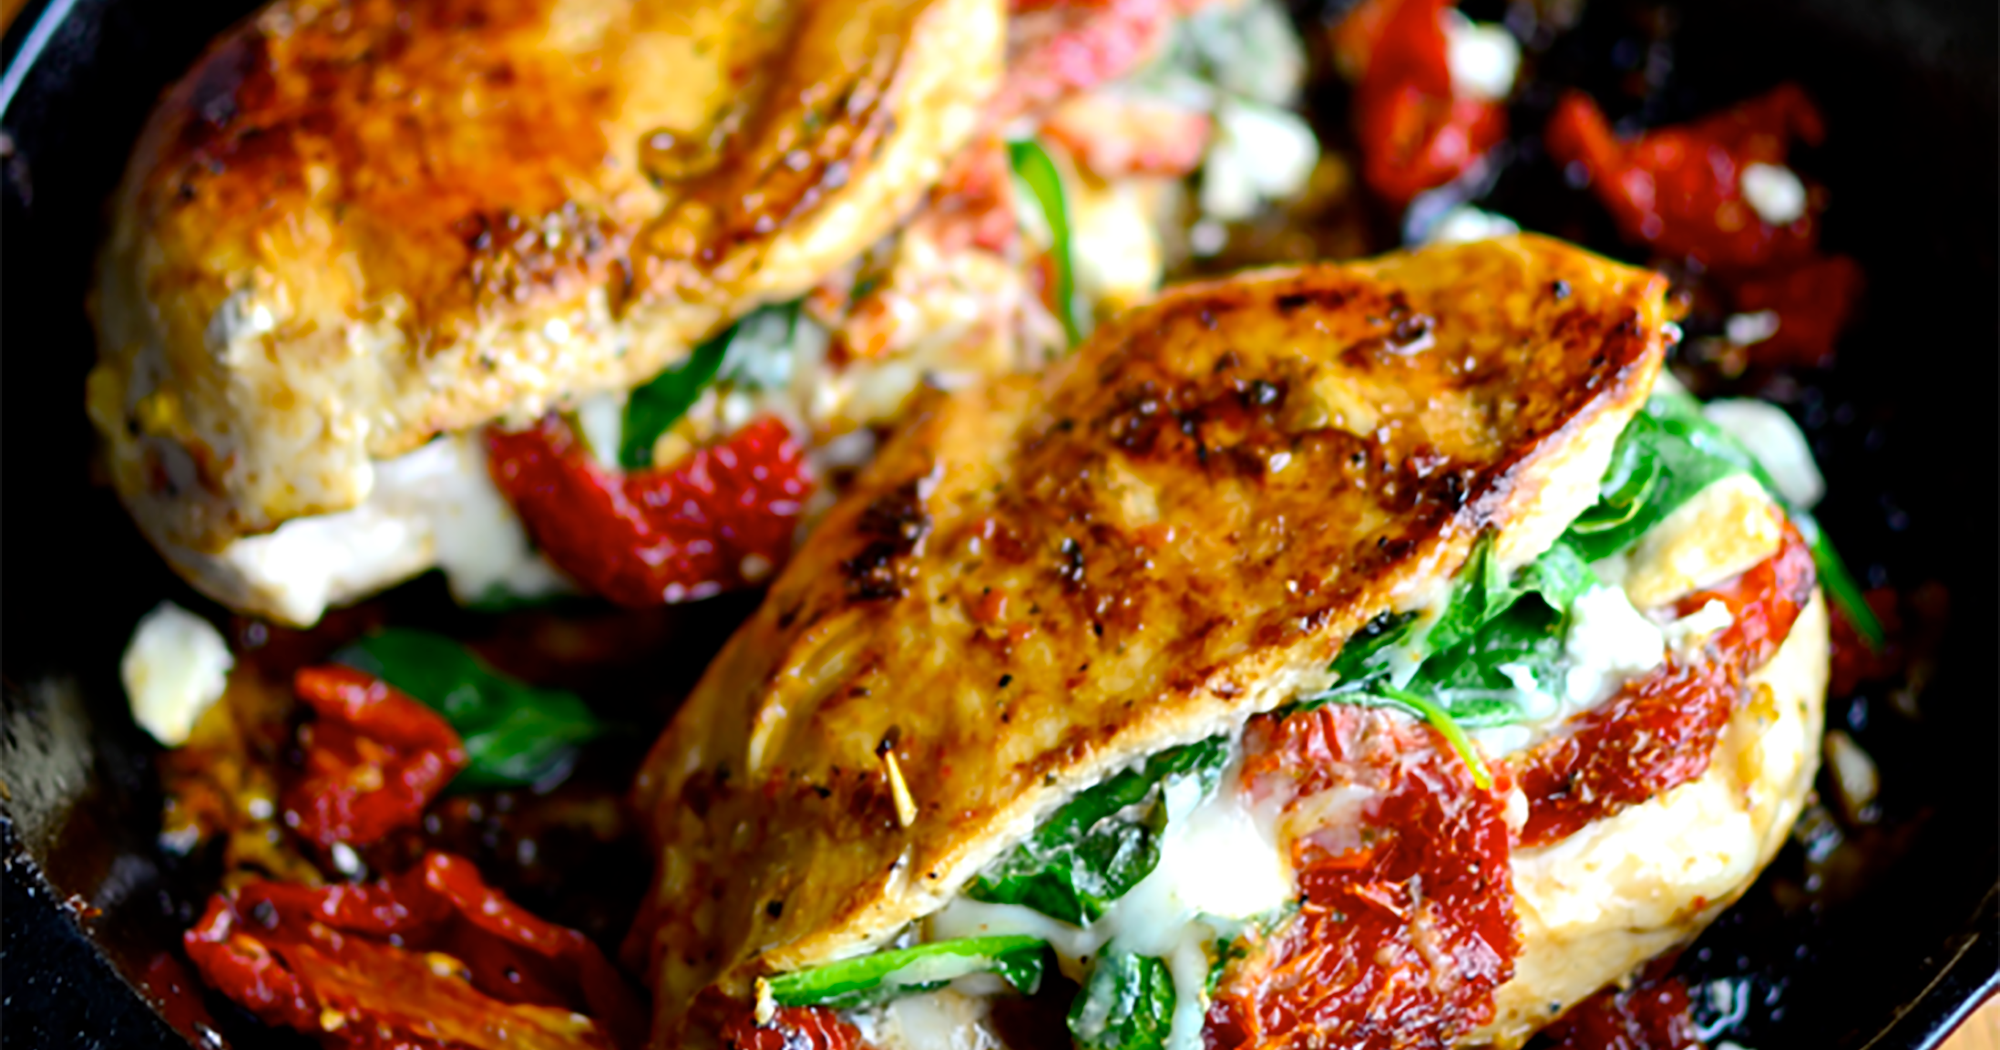 Baked Chicken Will Get You To Homemade Dinner In As Little As 20 Minutes